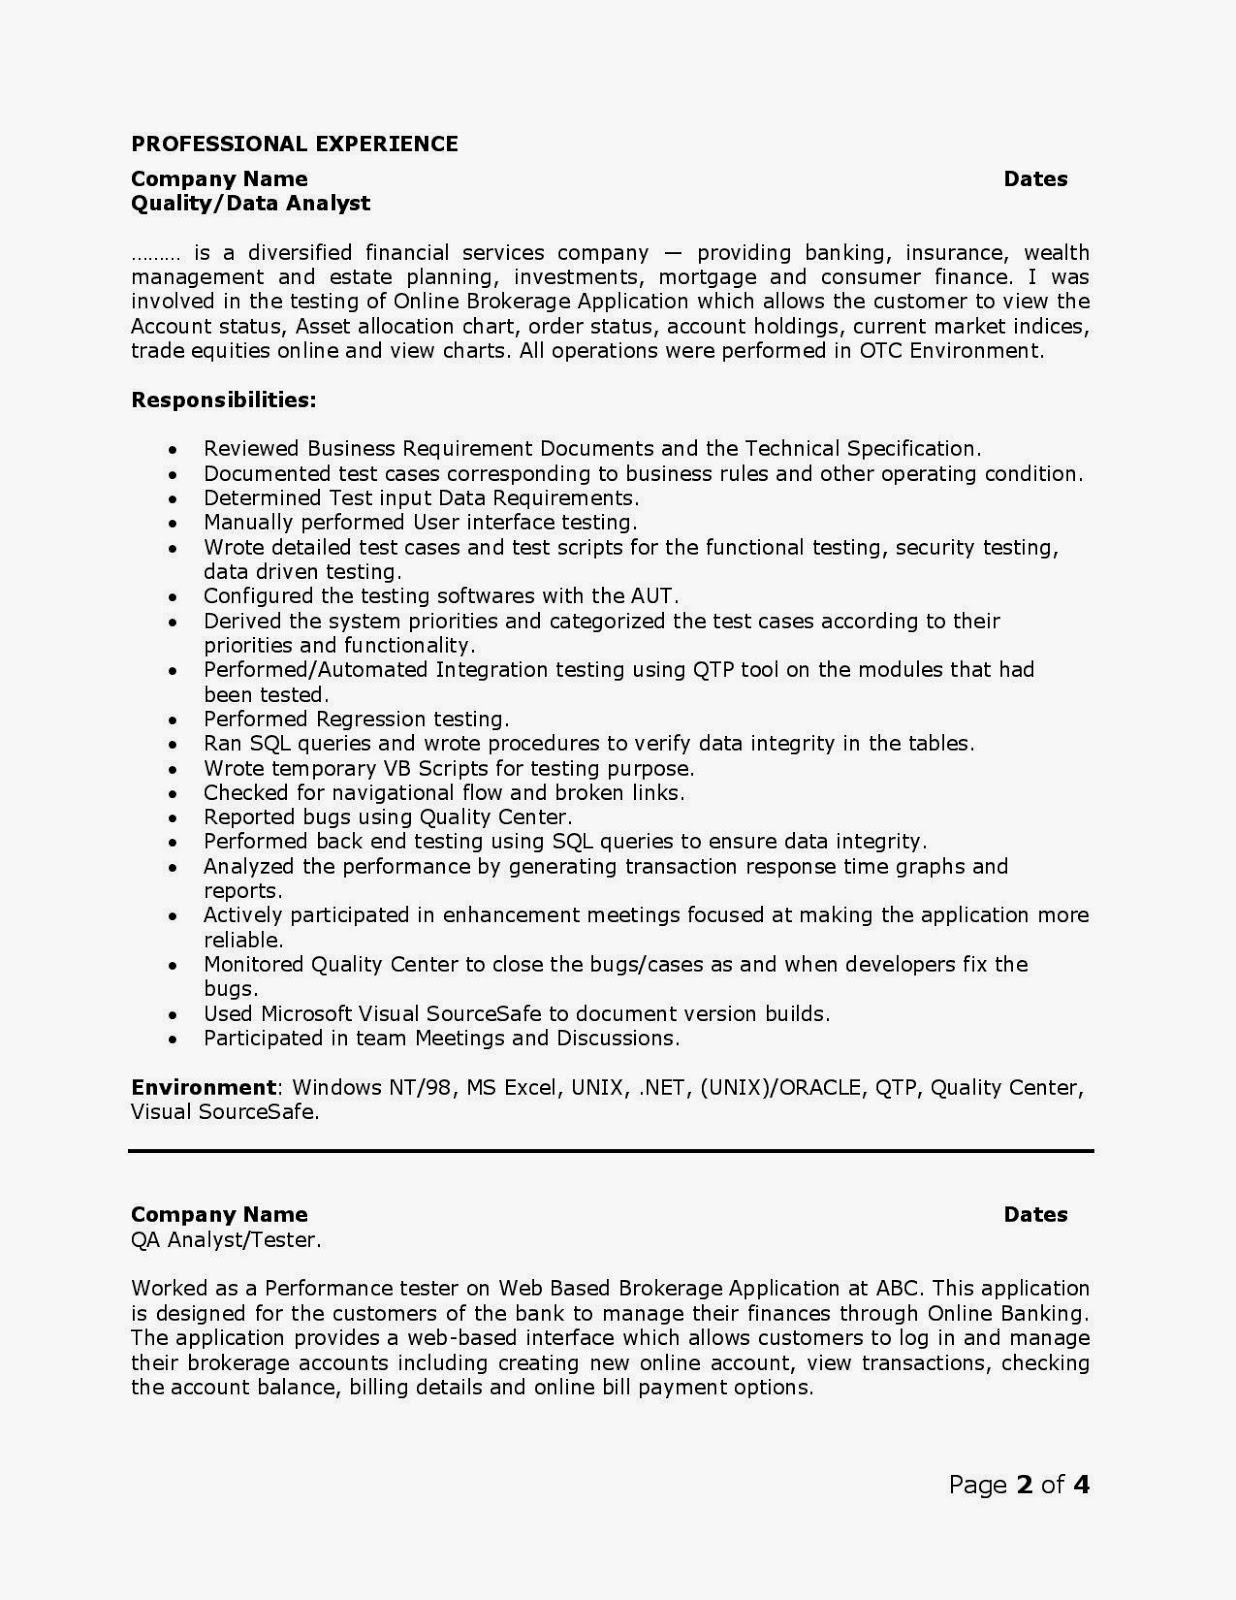 qa analyst resumes - Quality Analyst Resume